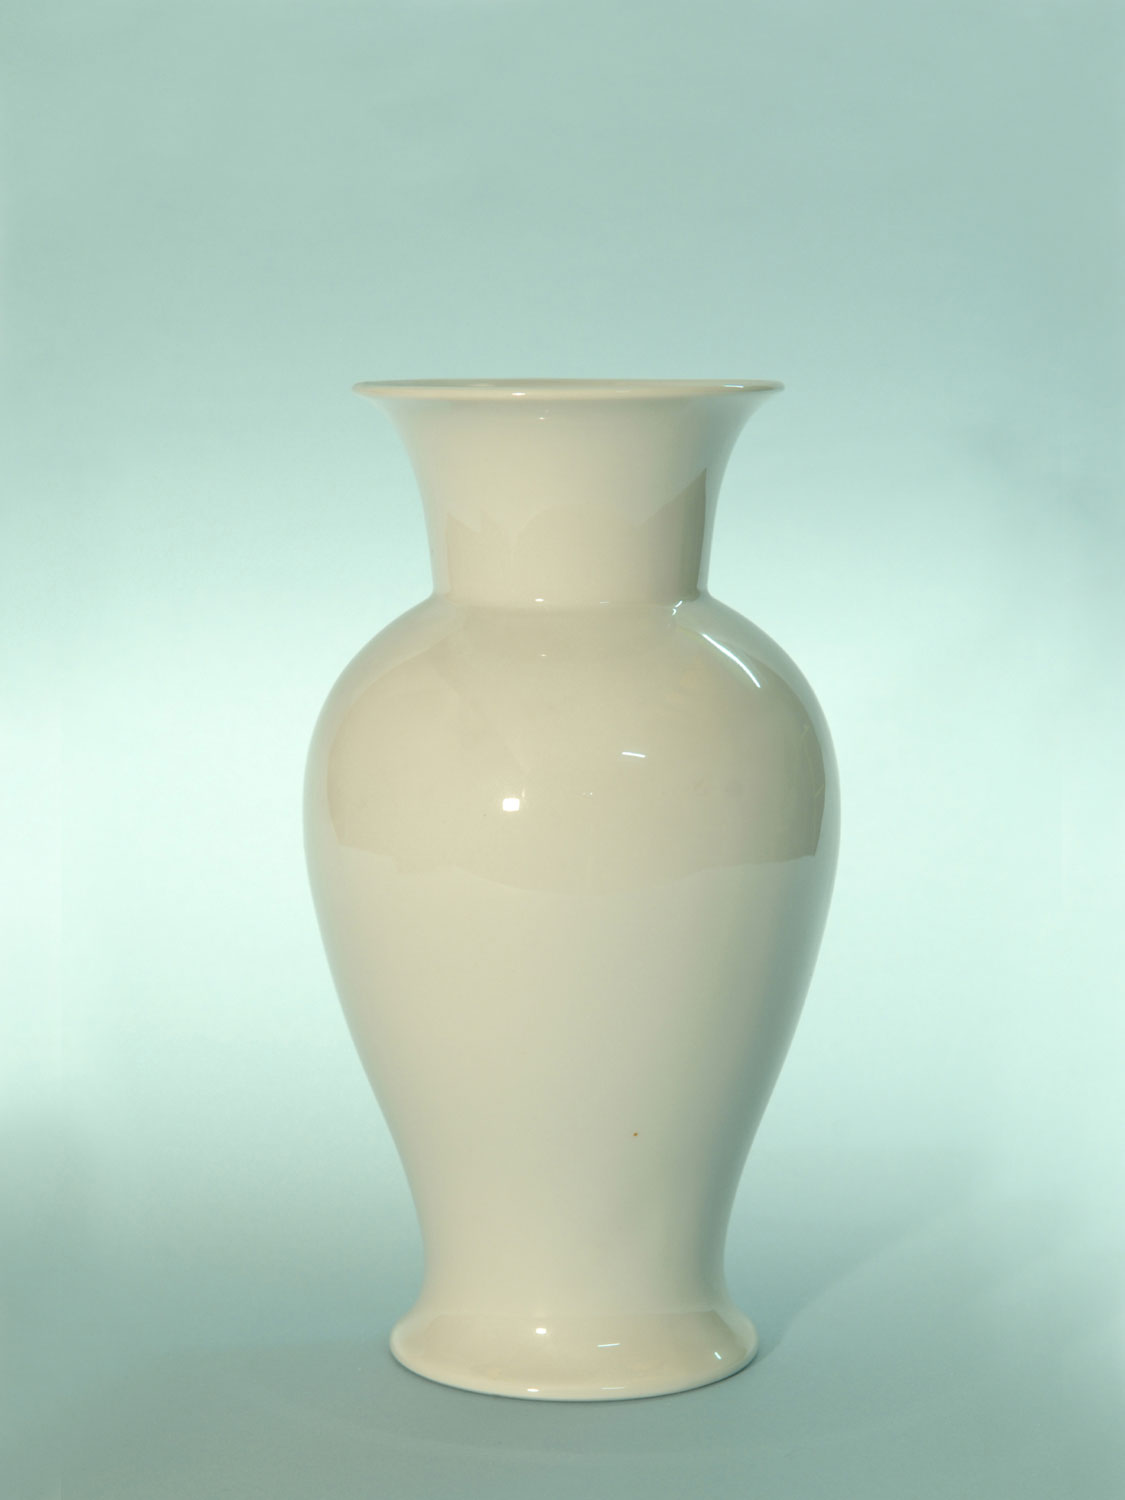 Vase. Sugar glass, Chinese vase medium 22.5 x 12.3 cm.